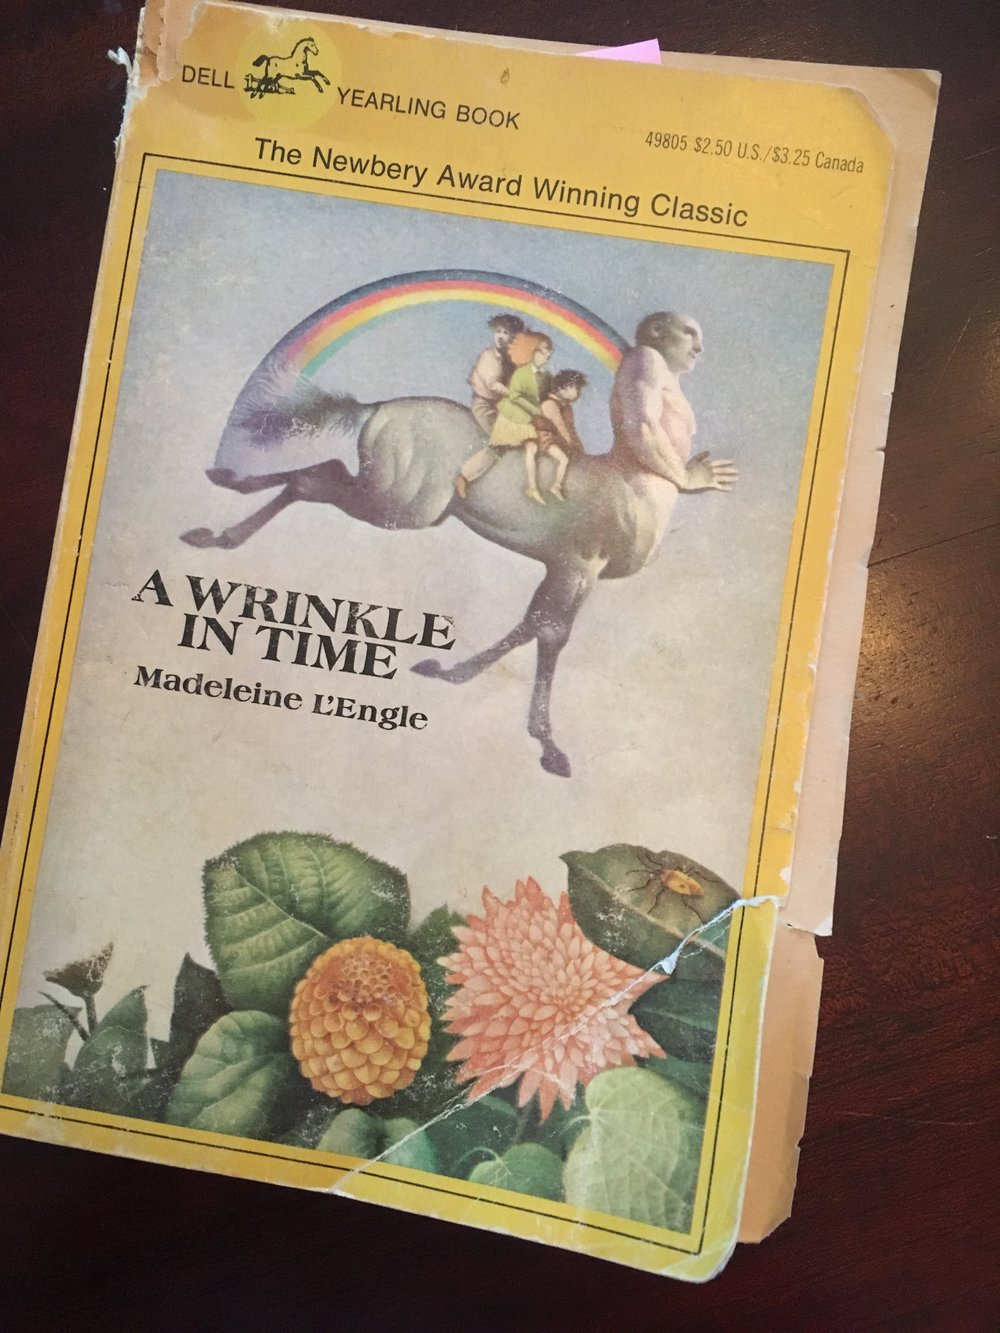 My original, well-worn 1983 copy of A Wrinkle in Time